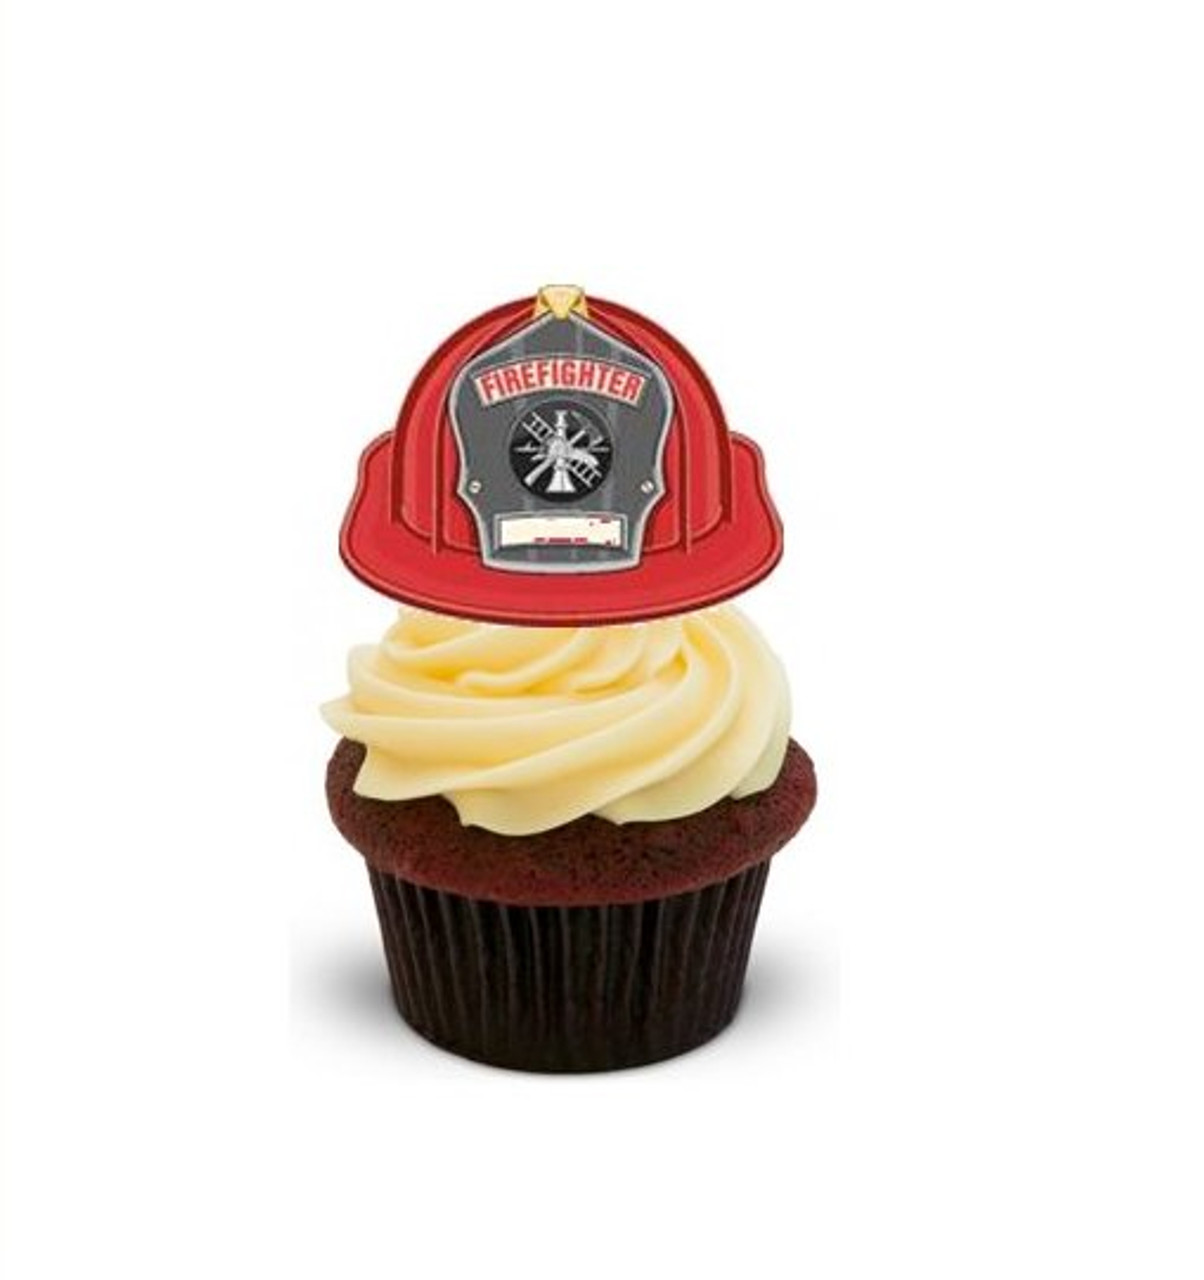 12 FIRE TRUCKS Edible Icing Image Birthday Cupcake Decoration Cake Toppers